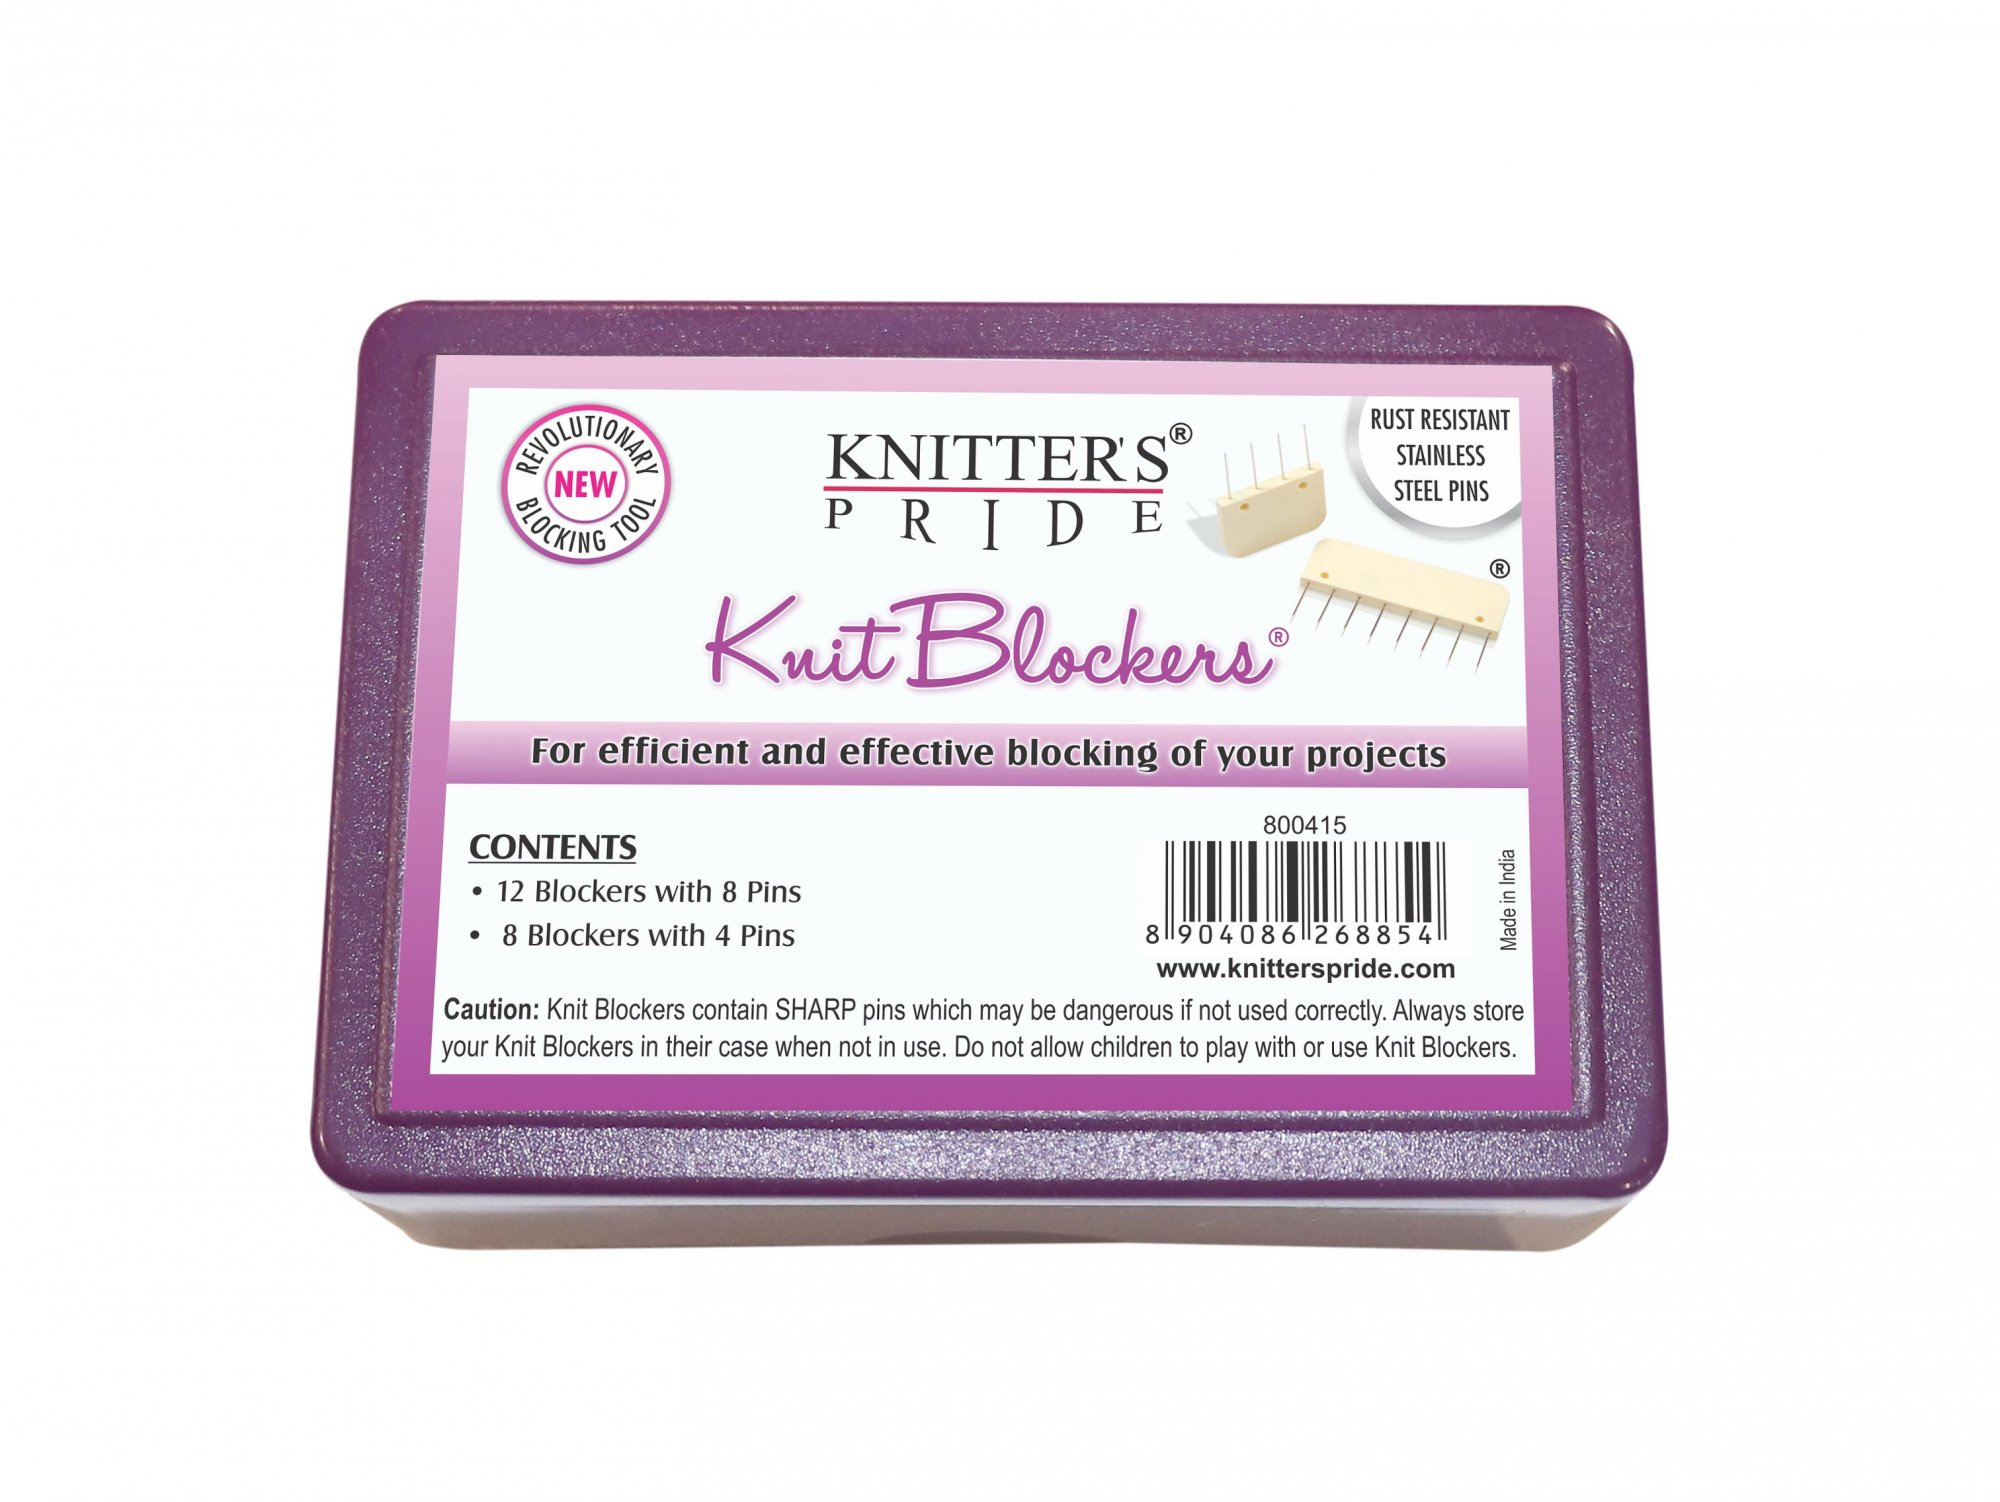 Knitter's Pride Blockers 20 pack (8pcs Knit Blockers w/ 4 Pins and 12pcs Knit Blockers w/ 8 Pins)